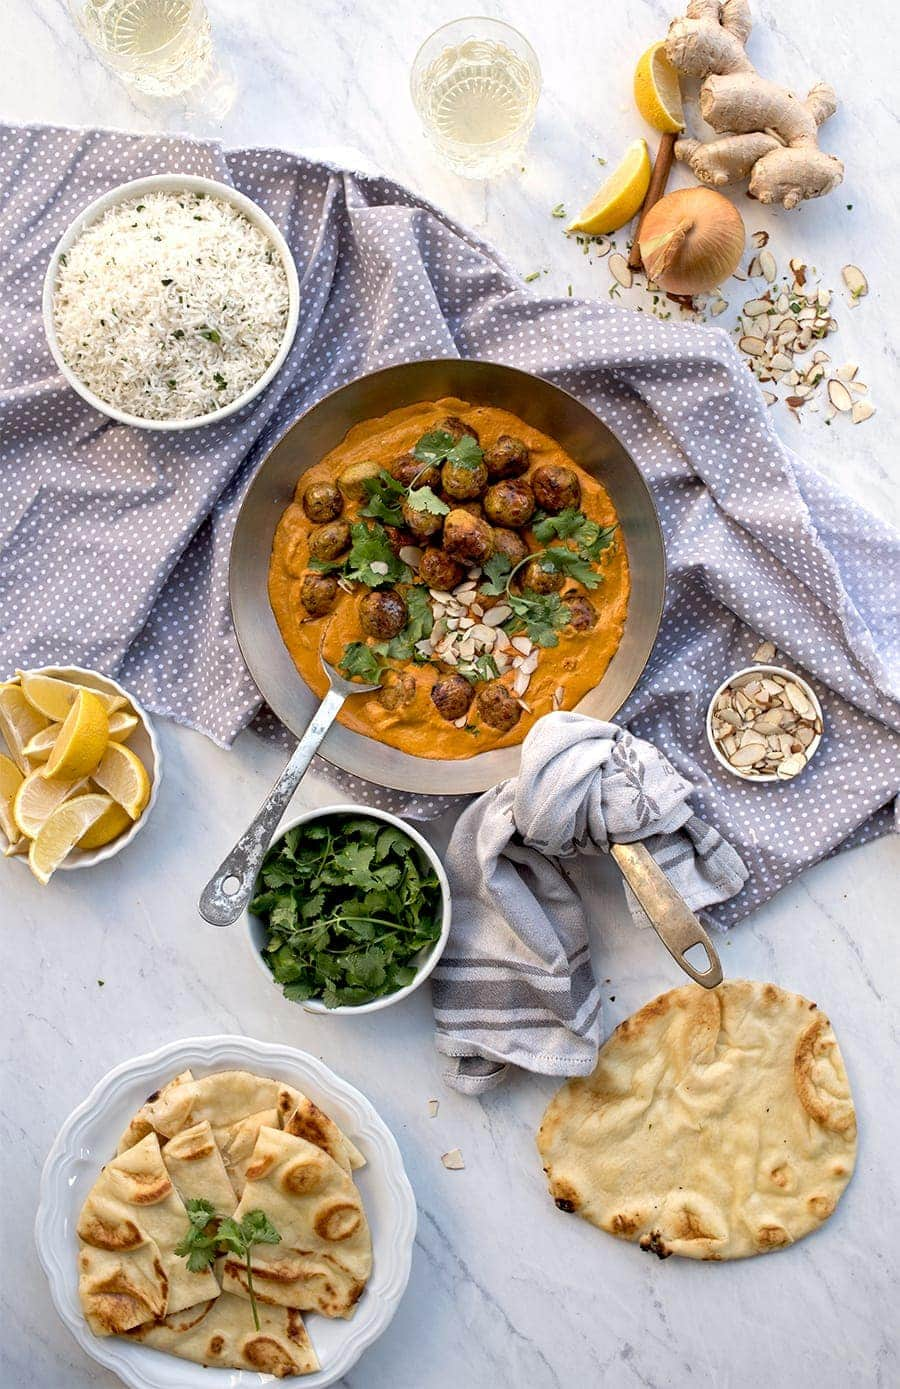 Table with skillet of butter chicken, naan and rice